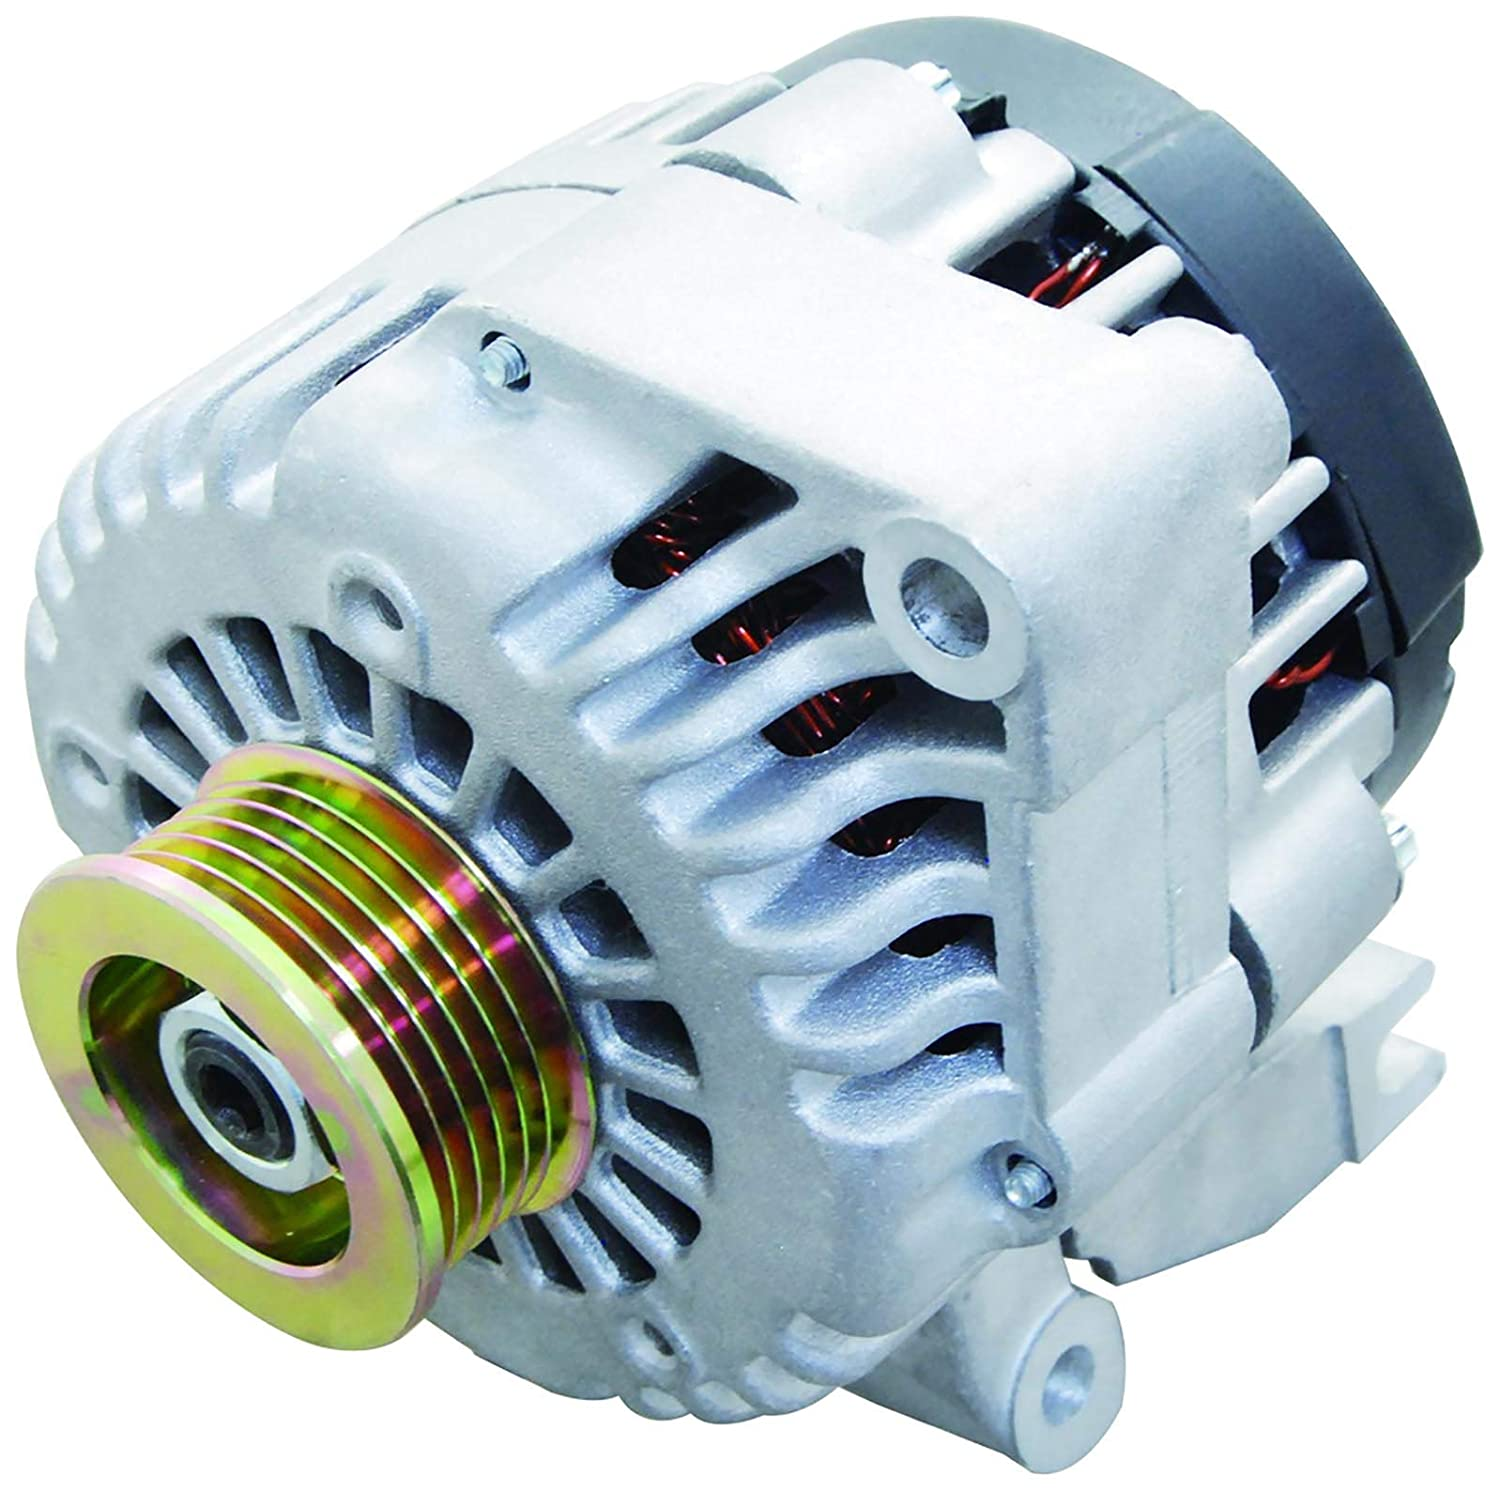 New Alternator 3.8 3.8L Lesabre Bonneville 00 01 02 03 04 2001 2002 2003 2004